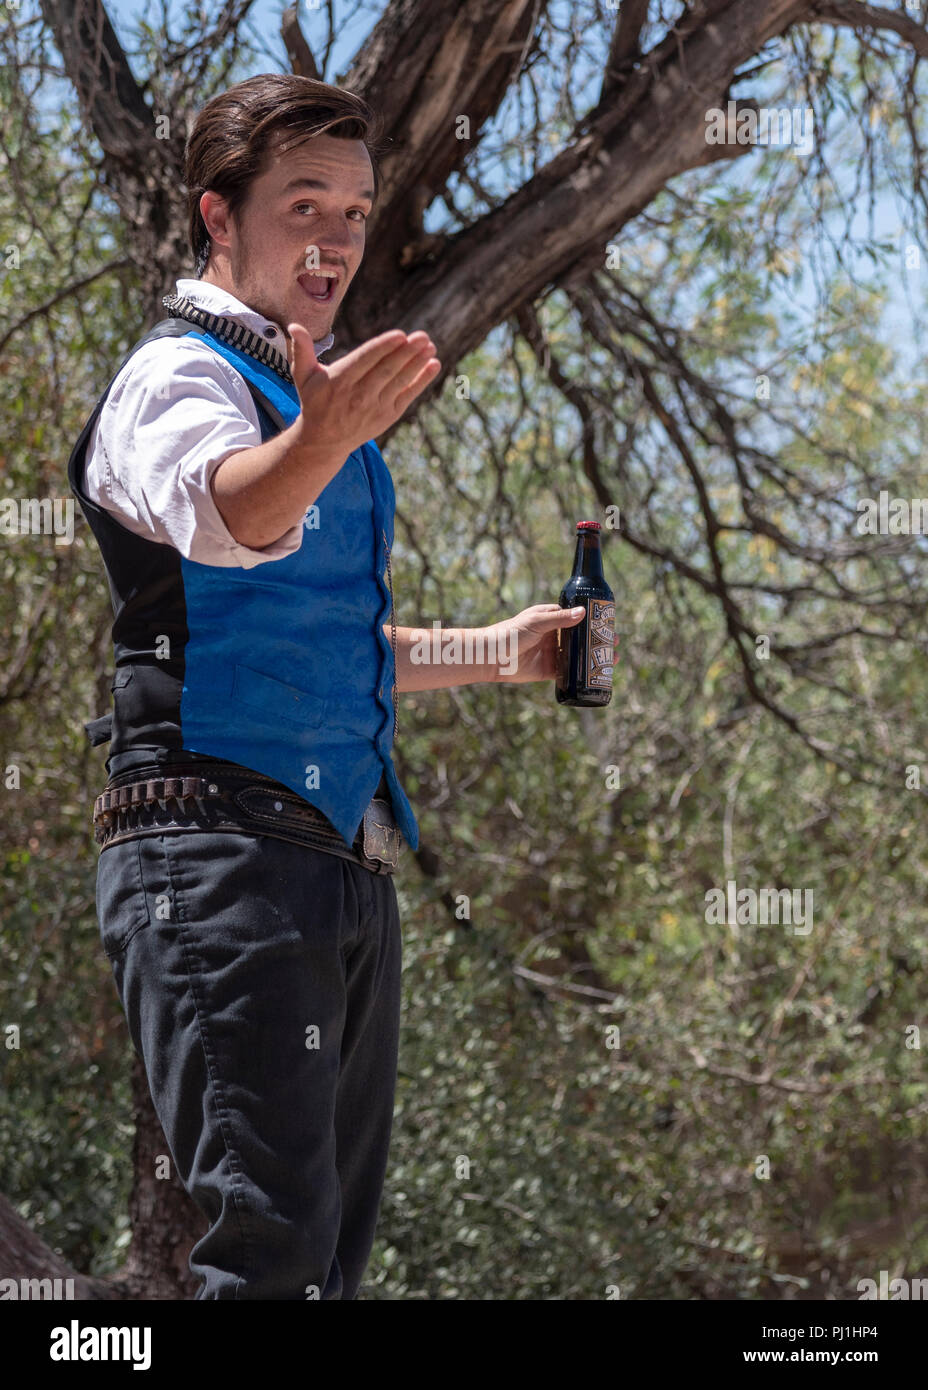 Actor dressed in old West style clothes describes the Benifits of the bottle of elixir in his had. - Stock Image